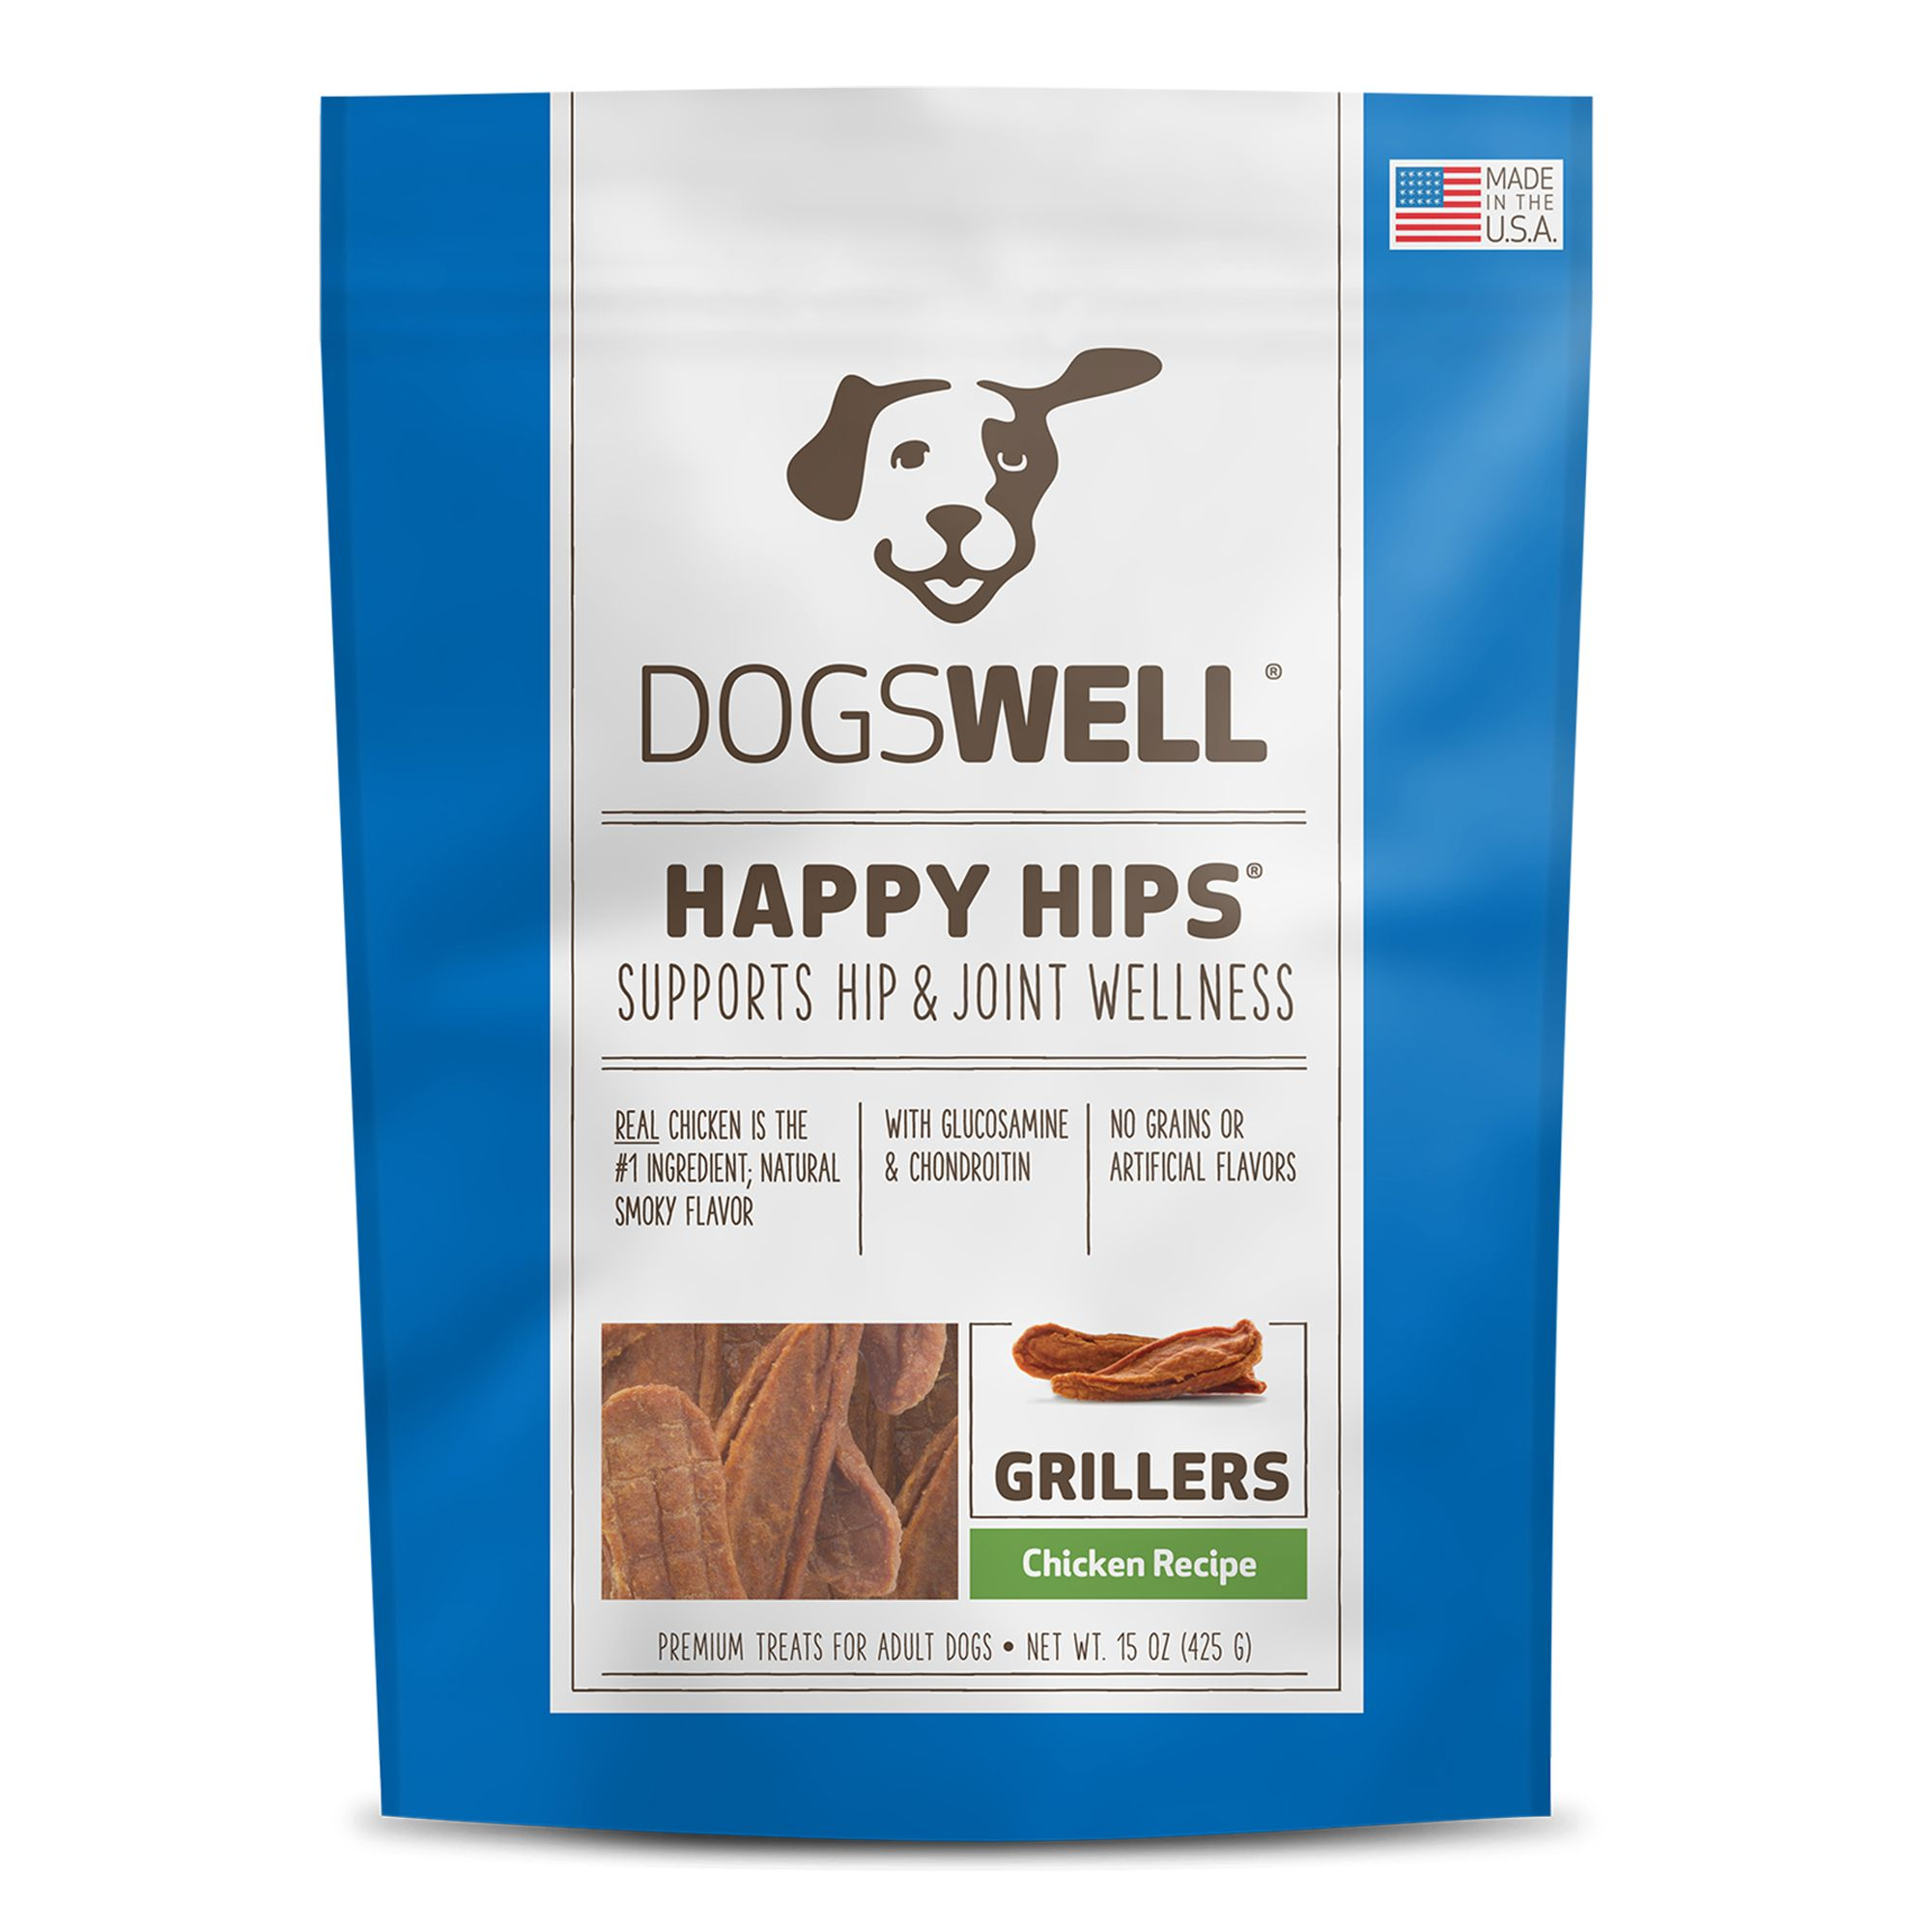 Dogswell Happy Hips Grillers Dog Treat - Grain Free, Chicken size: 15 Oz, Duck, Griller Treat, Adult 5271917